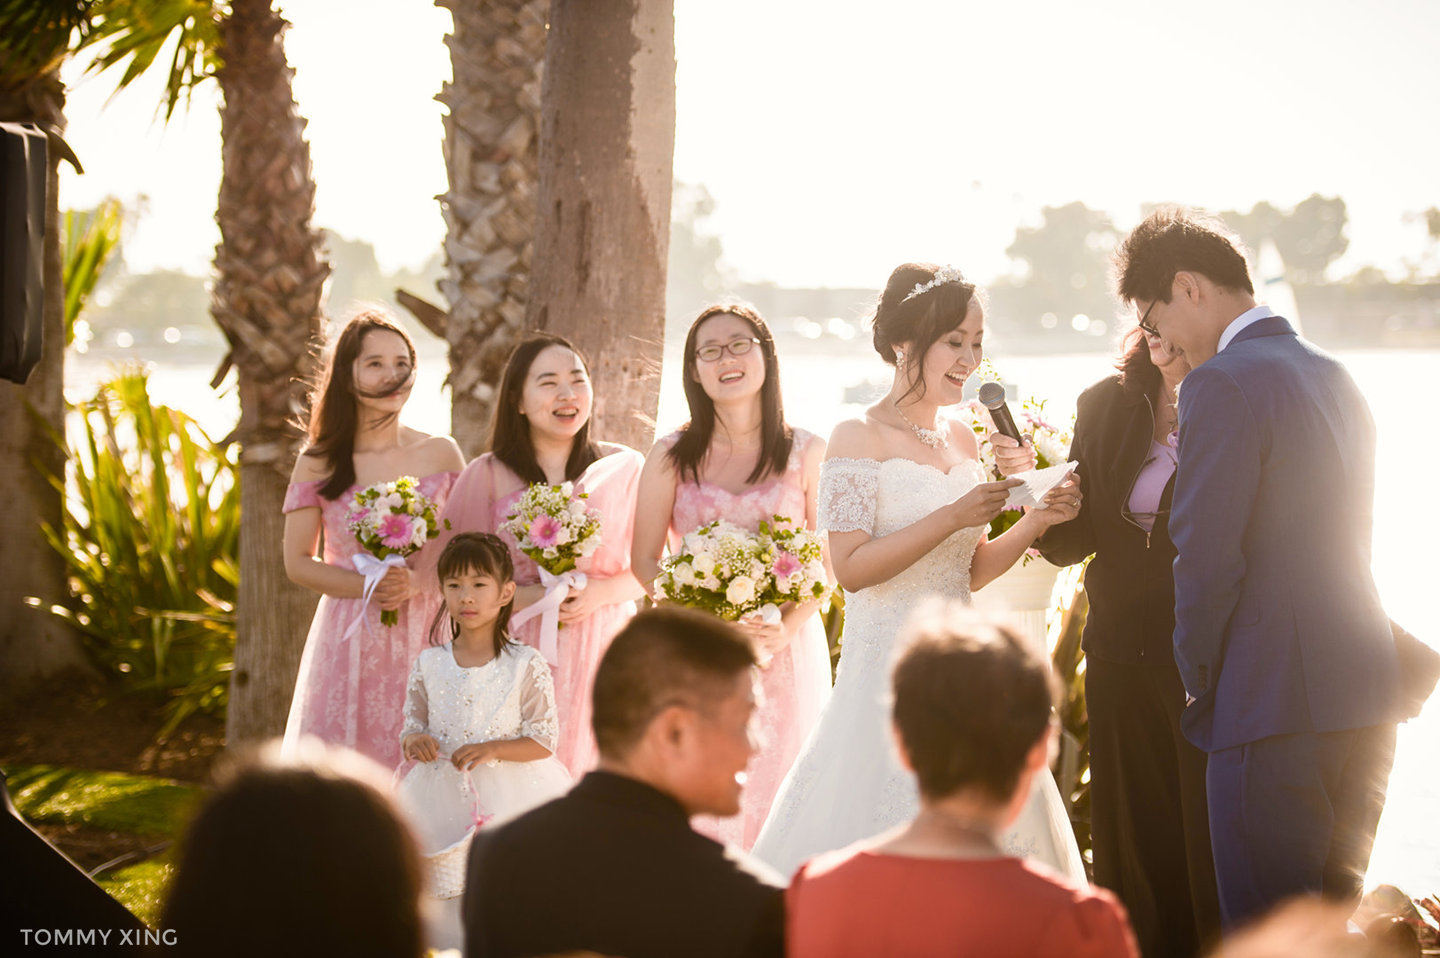 Paradise Point Resort Wedding Xiaolu & Bin San Diego 圣地亚哥婚礼摄影跟拍 Tommy Xing Photography 洛杉矶婚礼婚纱照摄影师 142.jpg